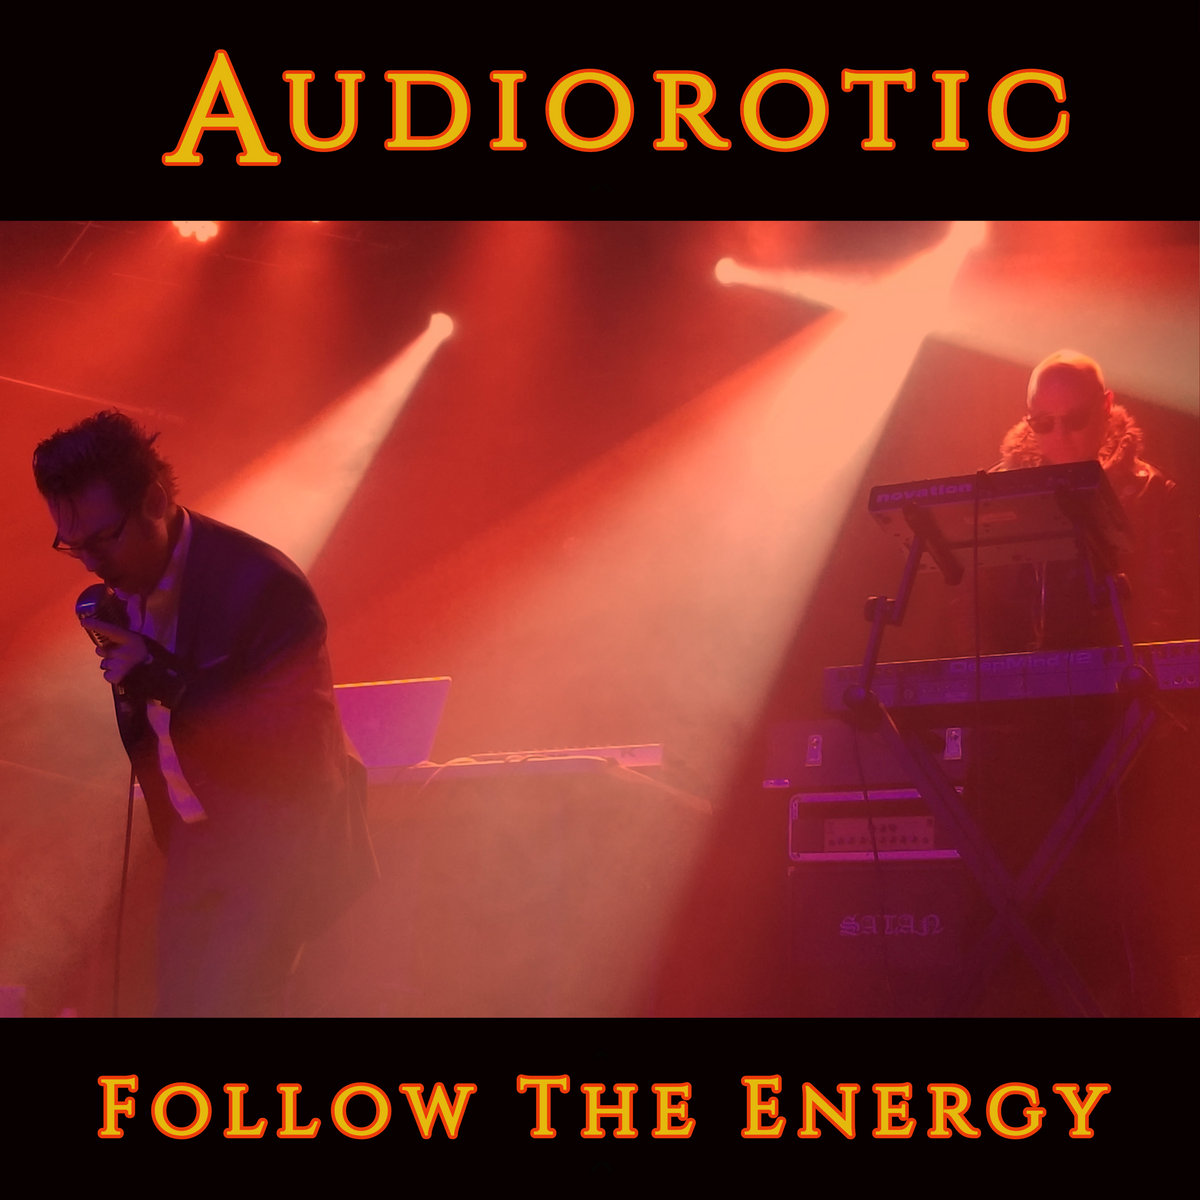 Follow the Energy by Audiorotic